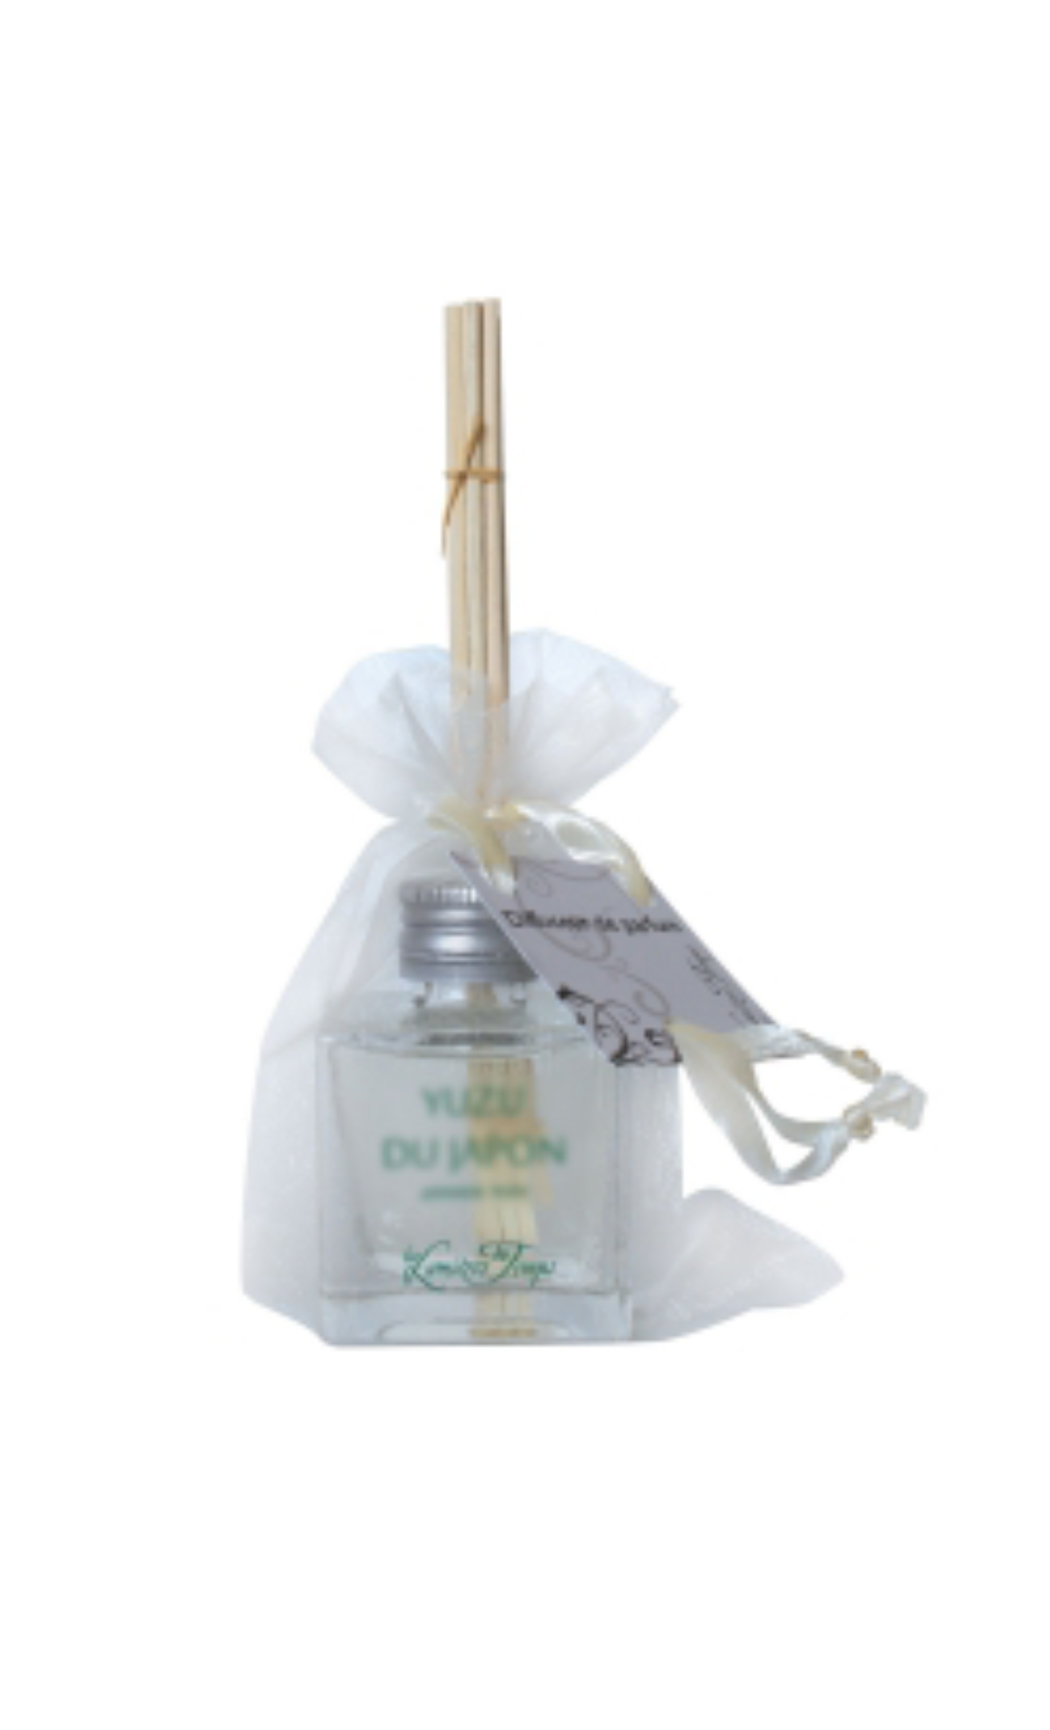 Orange Cinnamon Scented Reed Diffuser by Les Lumieres du Temps - Buy Aromatic Reed Diffusers Online